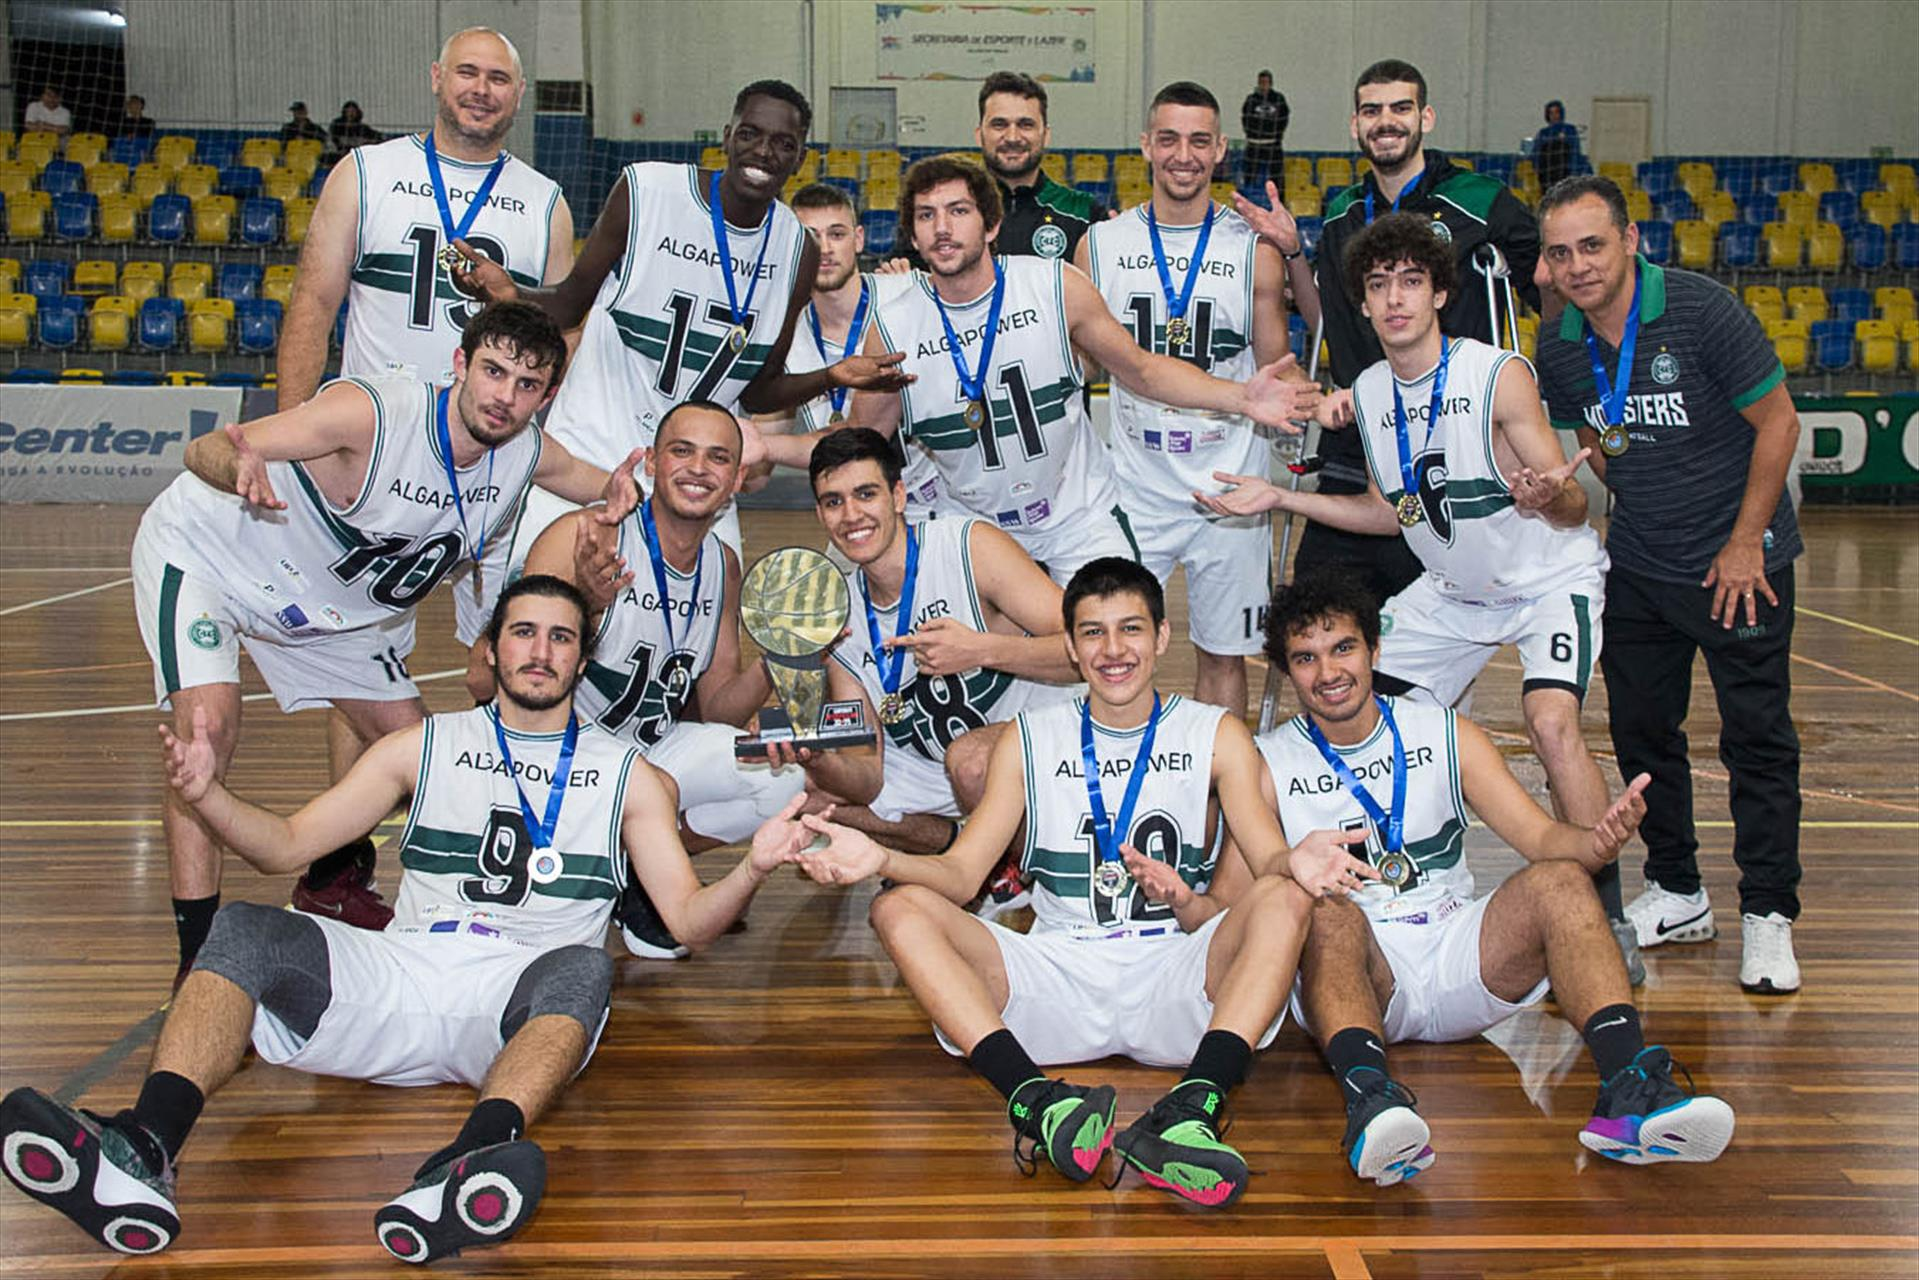 Coritiba Monsters conquista título